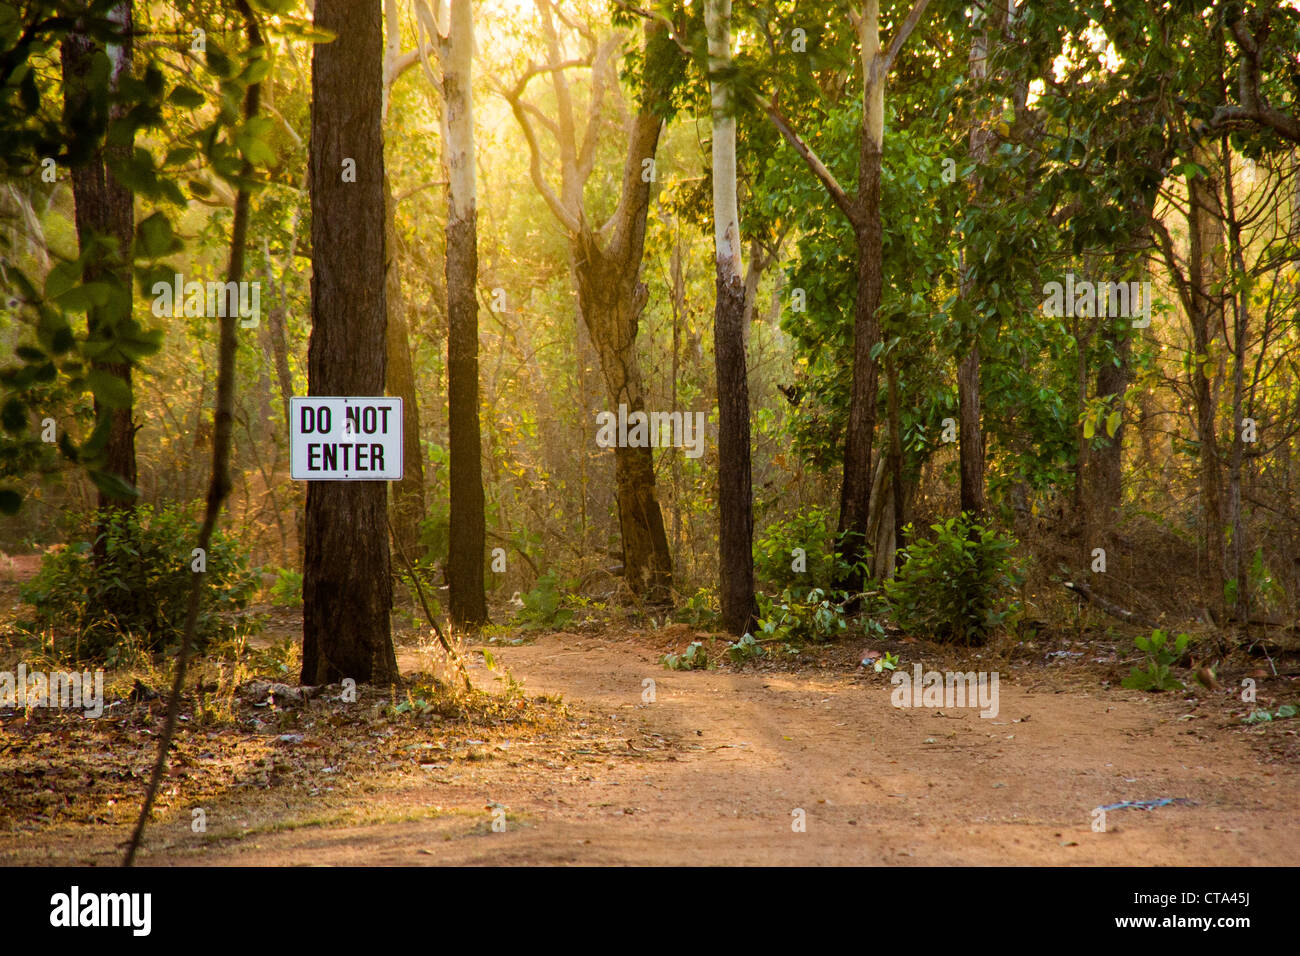 Do not enter sign along a pathway in Kakadu National Park Australia - Stock Image